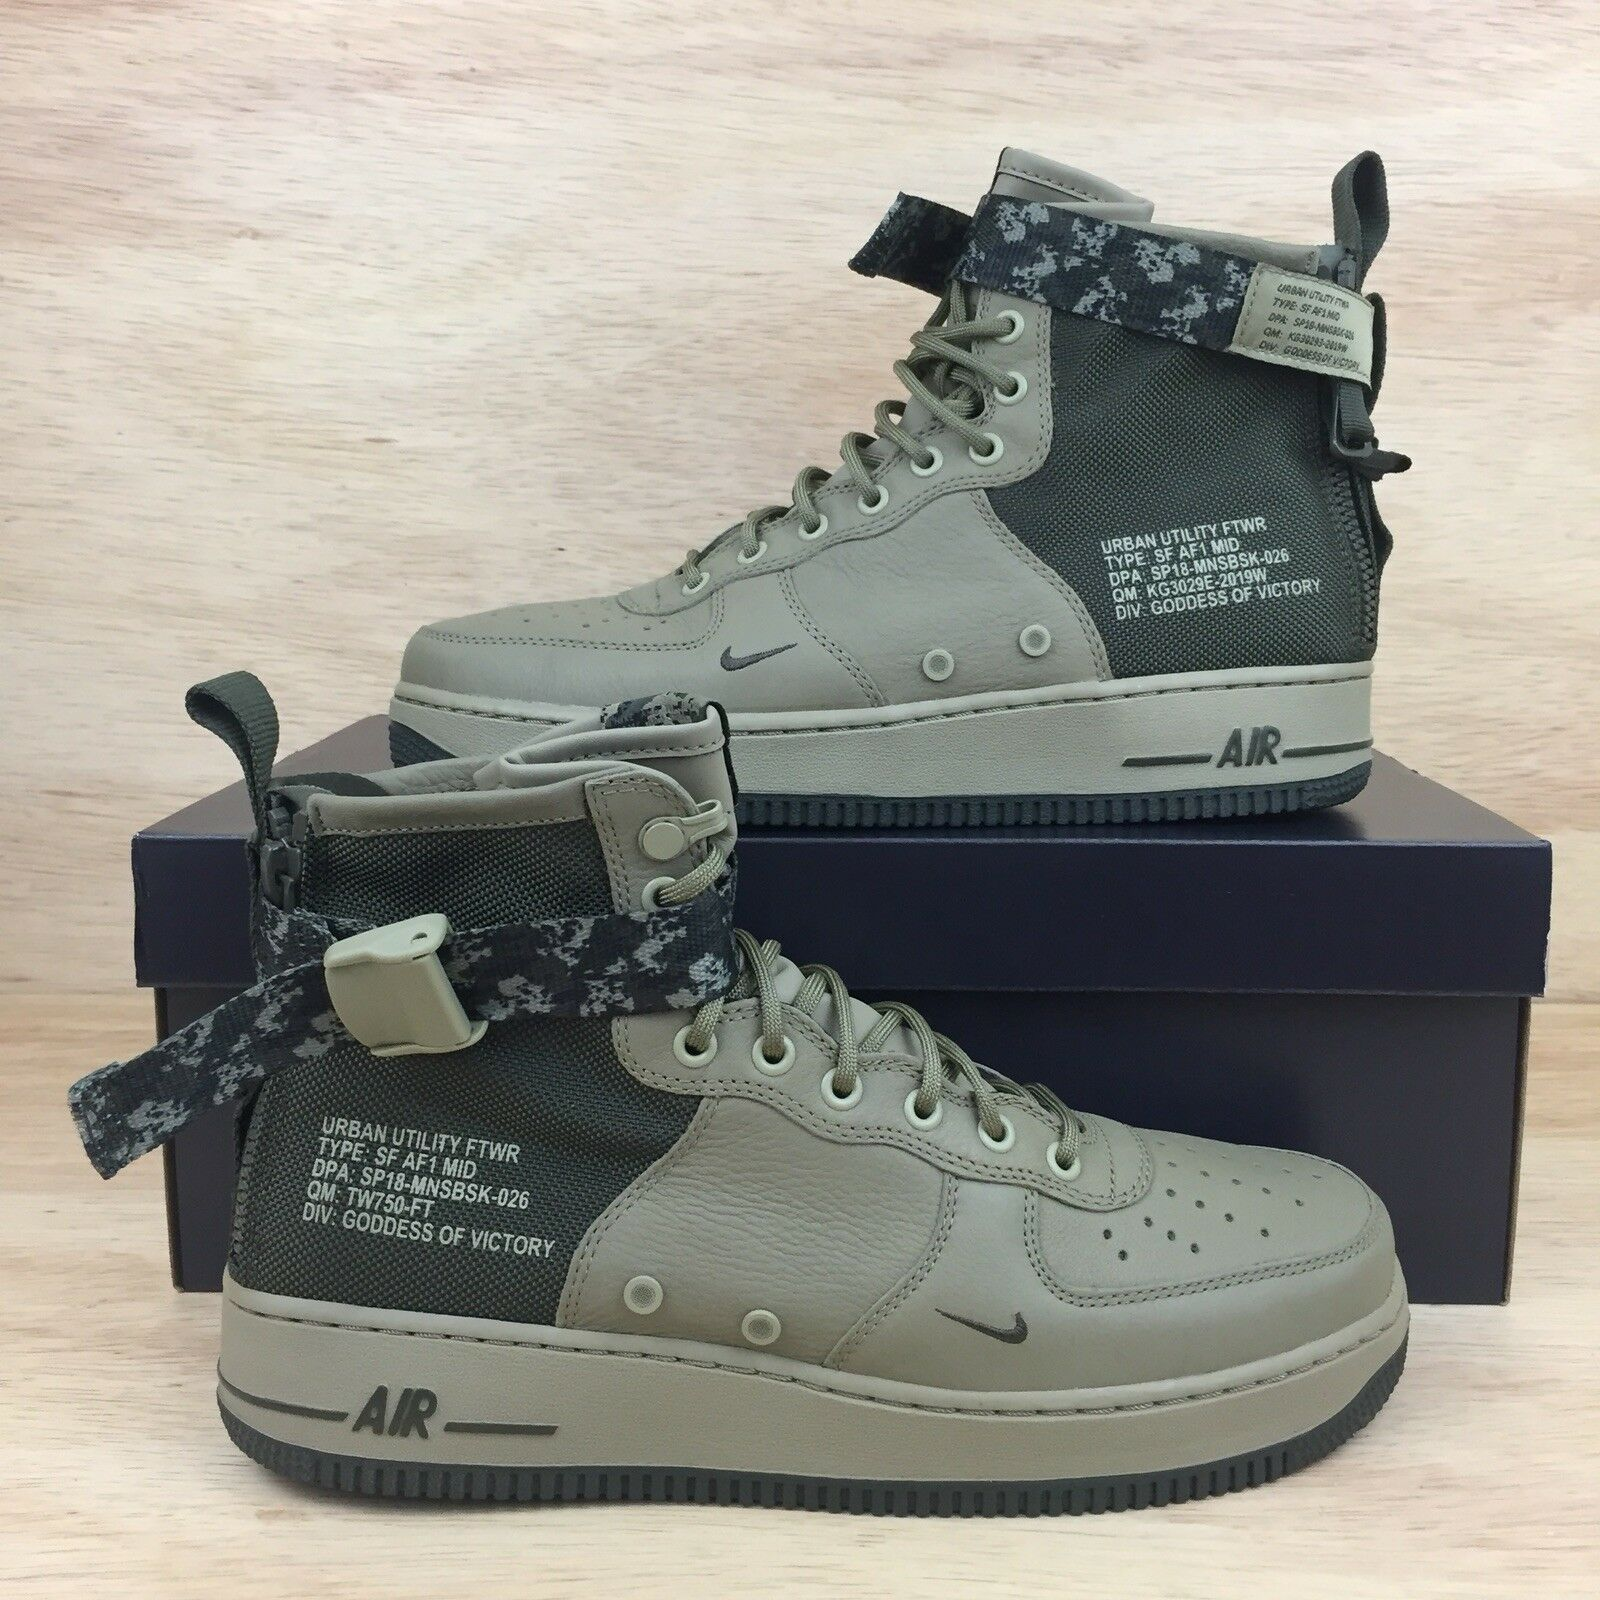 Nike SF AF1 Air Force 1 Special Forces Gree  Camo Olive Men's shoes Mens SZ 10.5